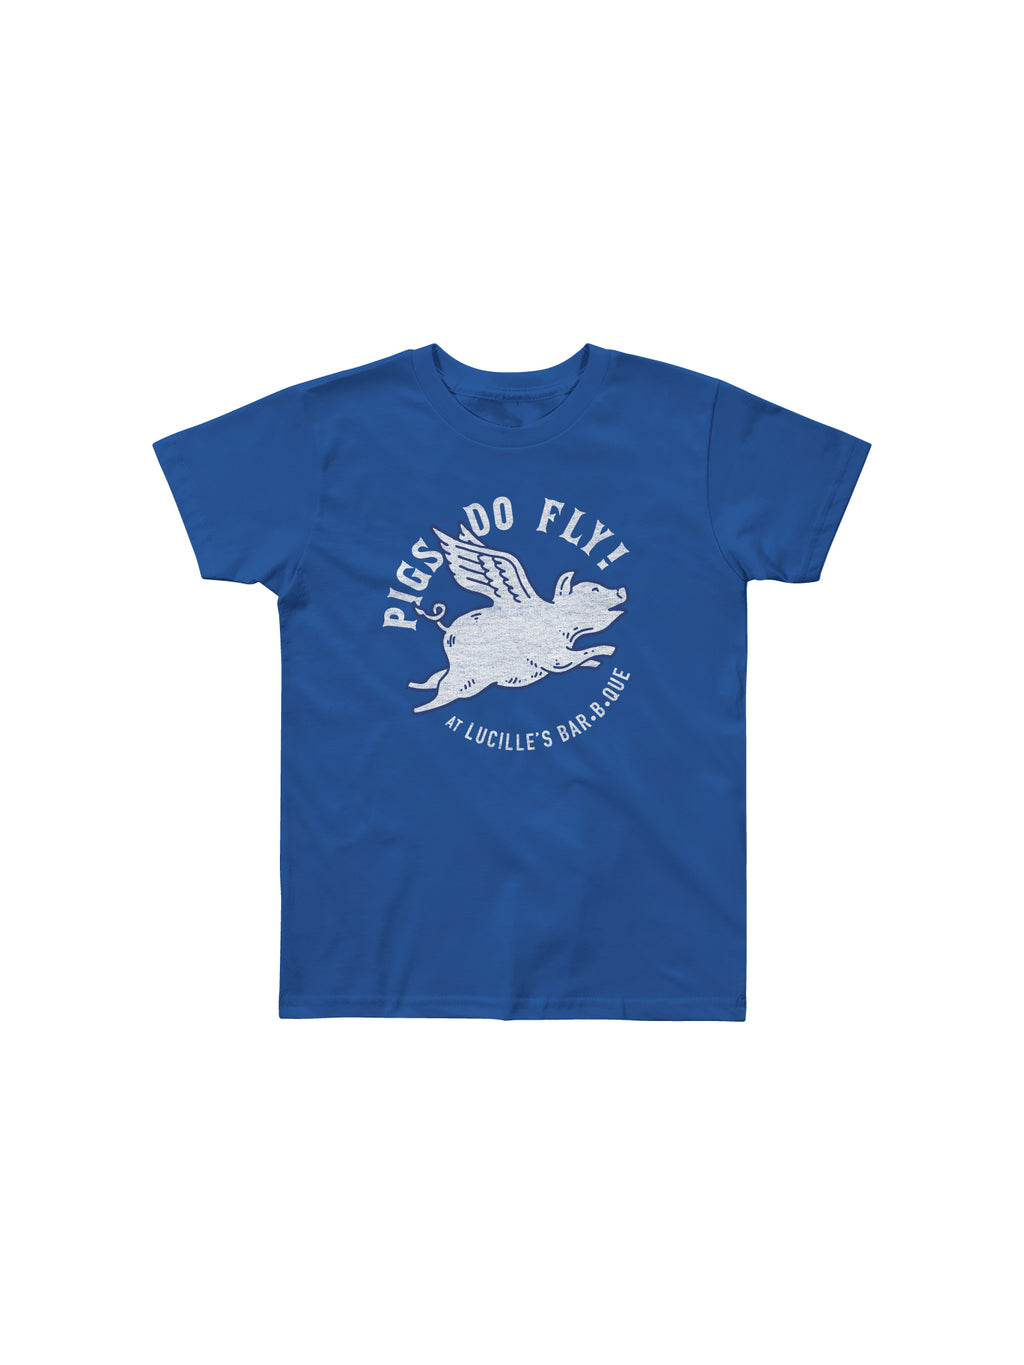 PIGS DO FLY YOUTH TSHIRT (ROYAL BLUE)